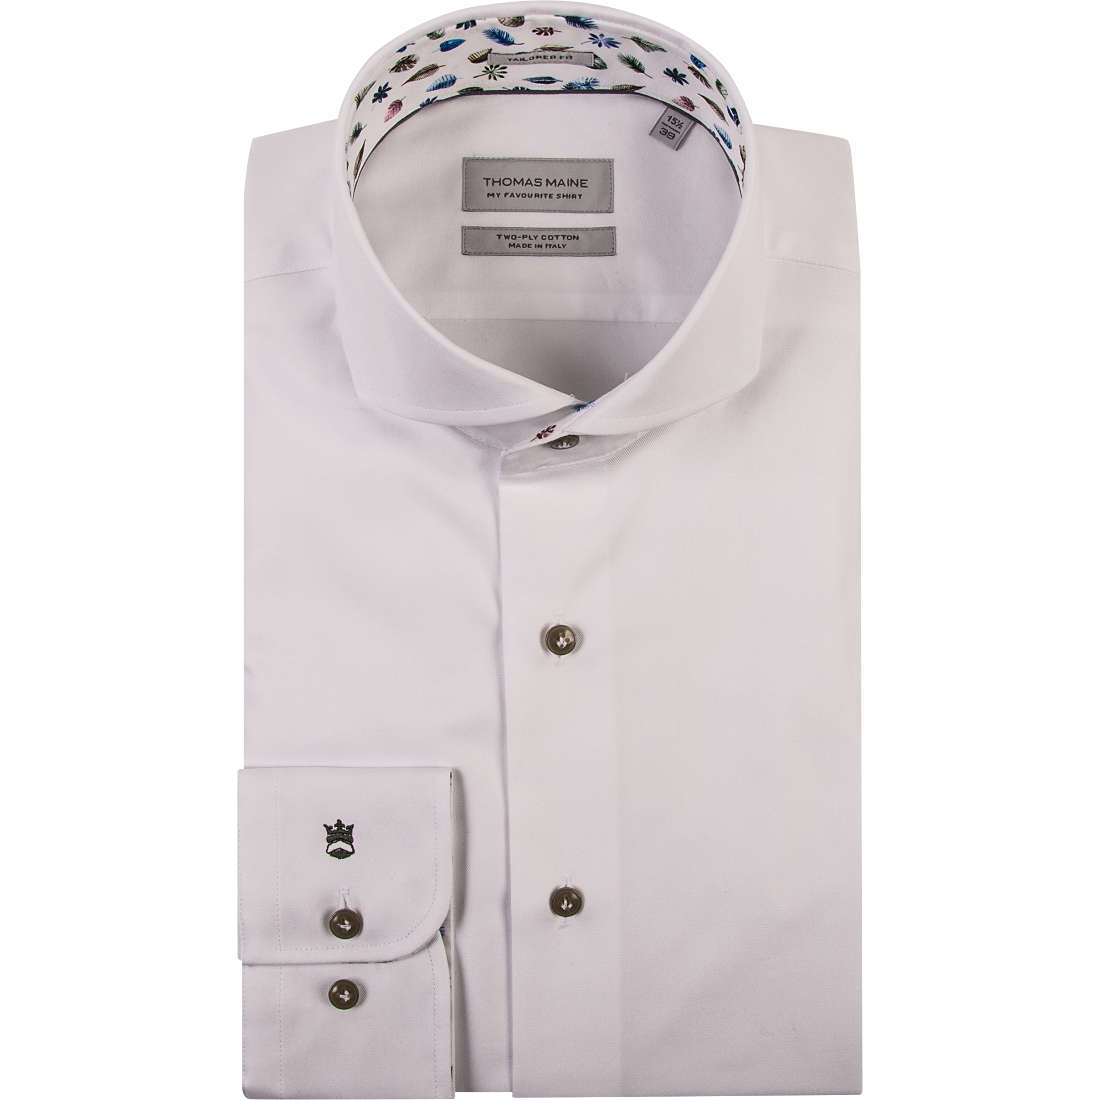 Thomas Maine overhemd Tailored Fit 91-7725a in het Wit